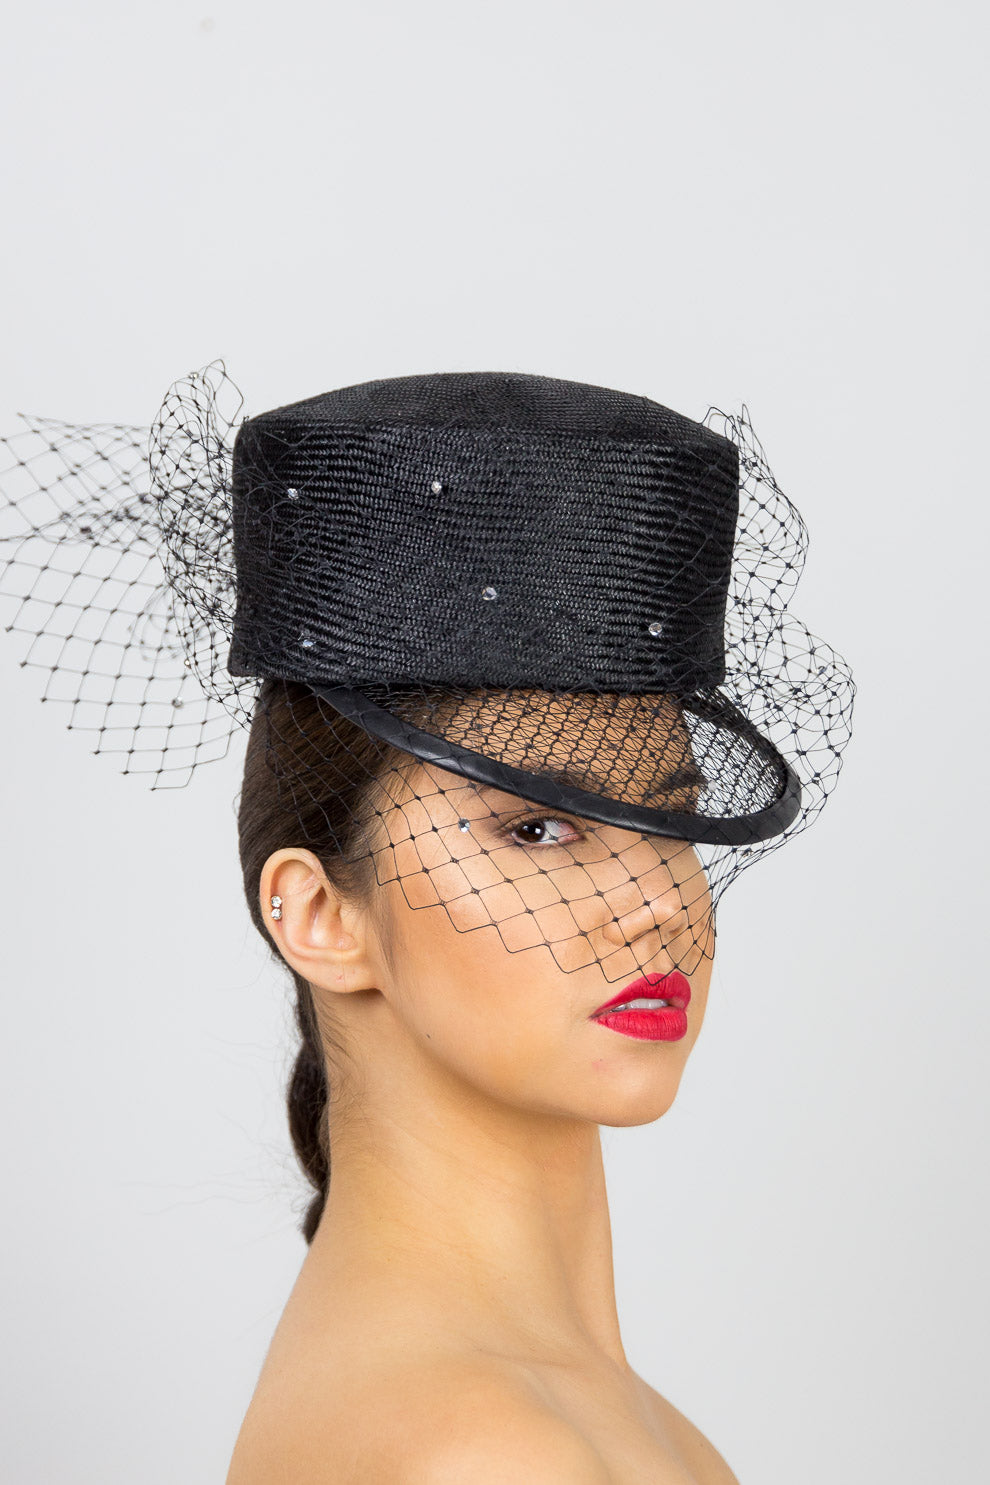 ANNA- Black cap with open weave visor and diamante veiling